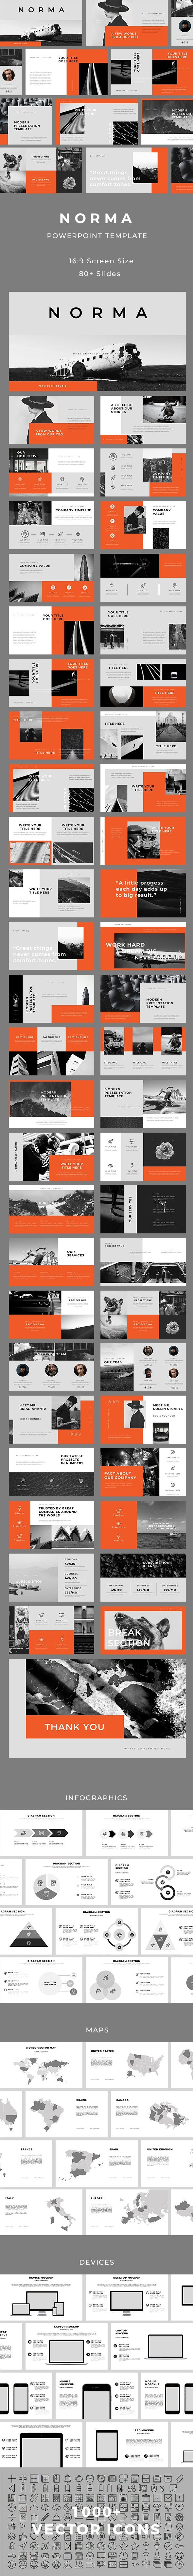 Norma PowerPoint Template - Creative PowerPoint Templates